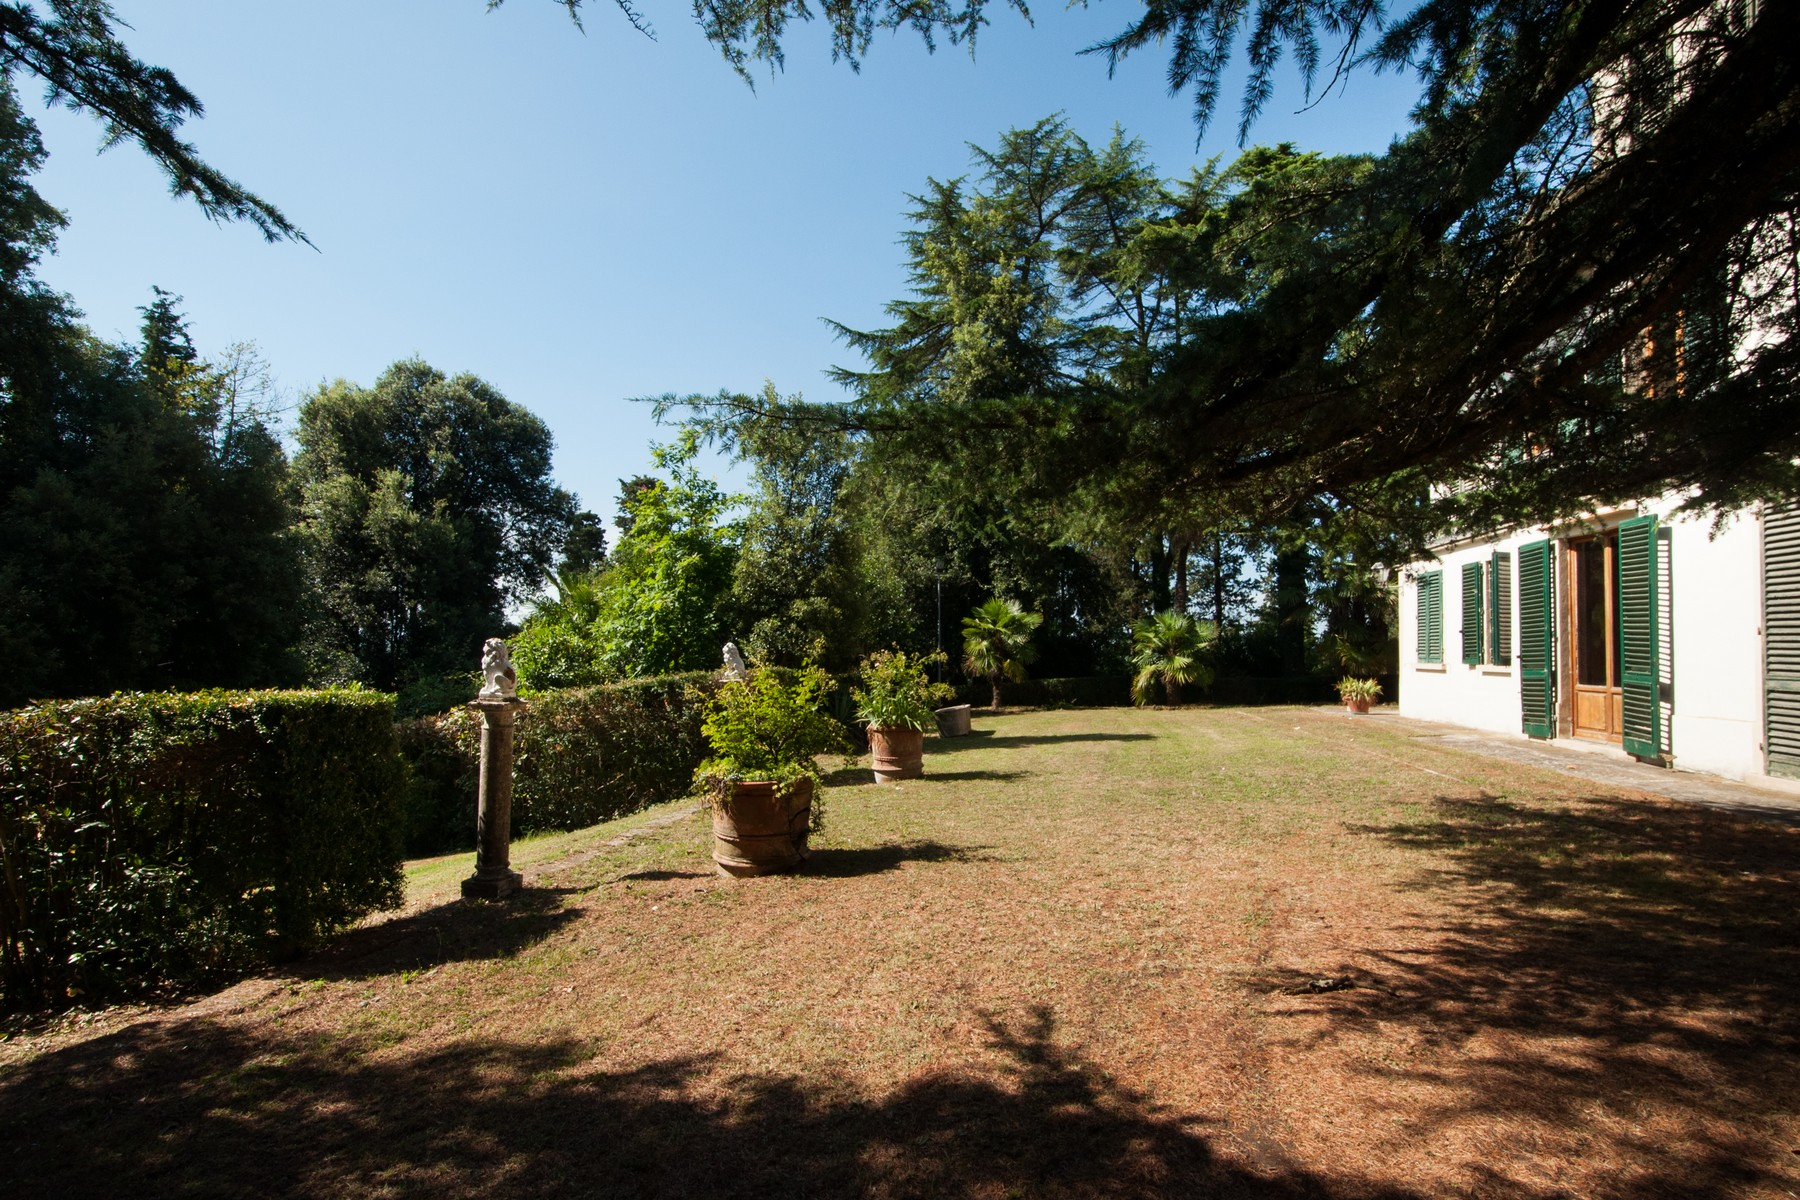 Additional photo for property listing at Splendida casa di campagna con vigneti e oliveti Via di Mellicciano San Miniato, Pisa 50012 Italy